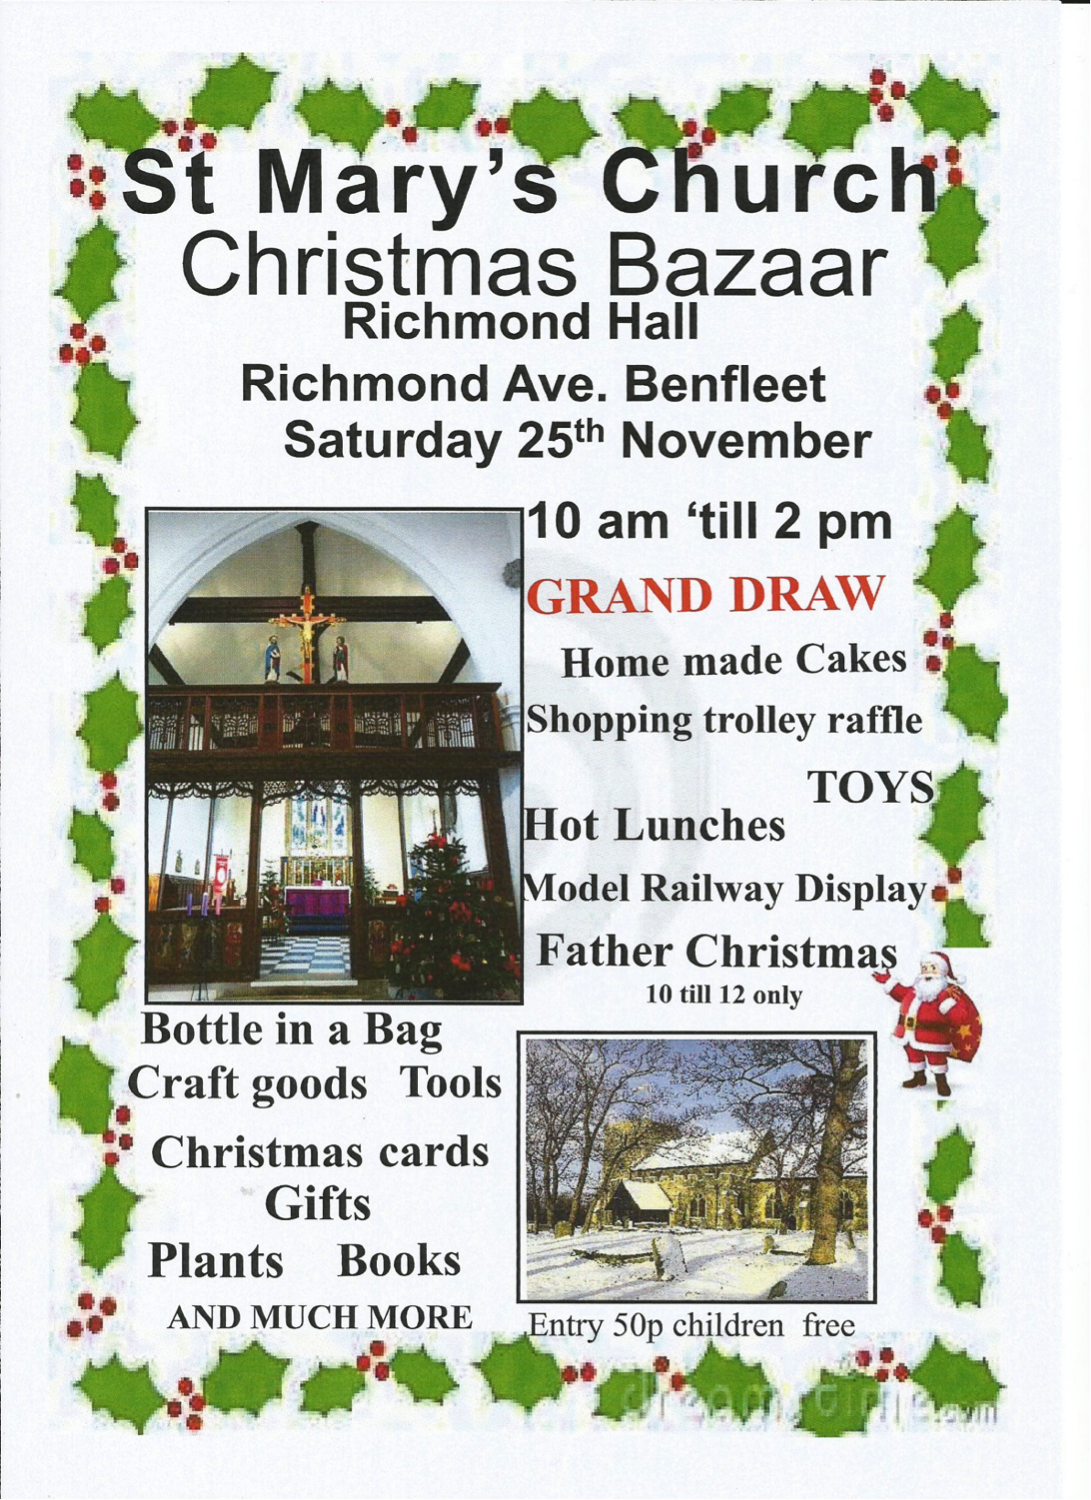 Grand Draw | Home made cakes | shopping trolley raffle | toys | hot lunches | model railway display | Father Christmas 10-12 only | Bottle in a bag | craft goods | tools | Christmas cards | gifts | plants | books | and much more! | 50p entry children free